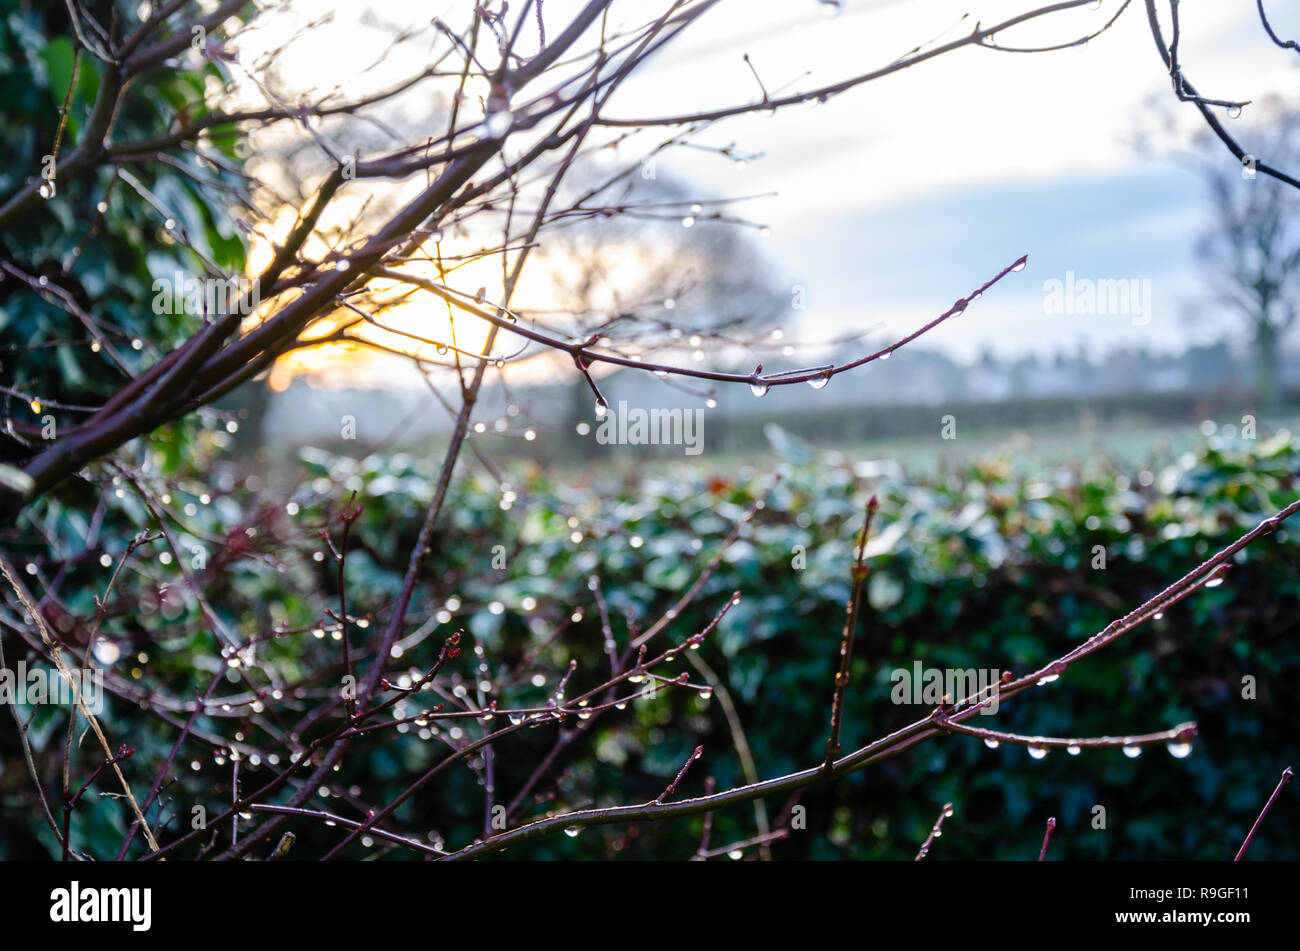 south-staffordshire-uk-24th-dec-2018-uk-weather-early-morning-sun-on-what-looks-to-be-a-warm-christmas-eve-in-south-staffordshire-near-wolverhampton-matthew-ashmorealamy-live-news-R9GF11.jpg